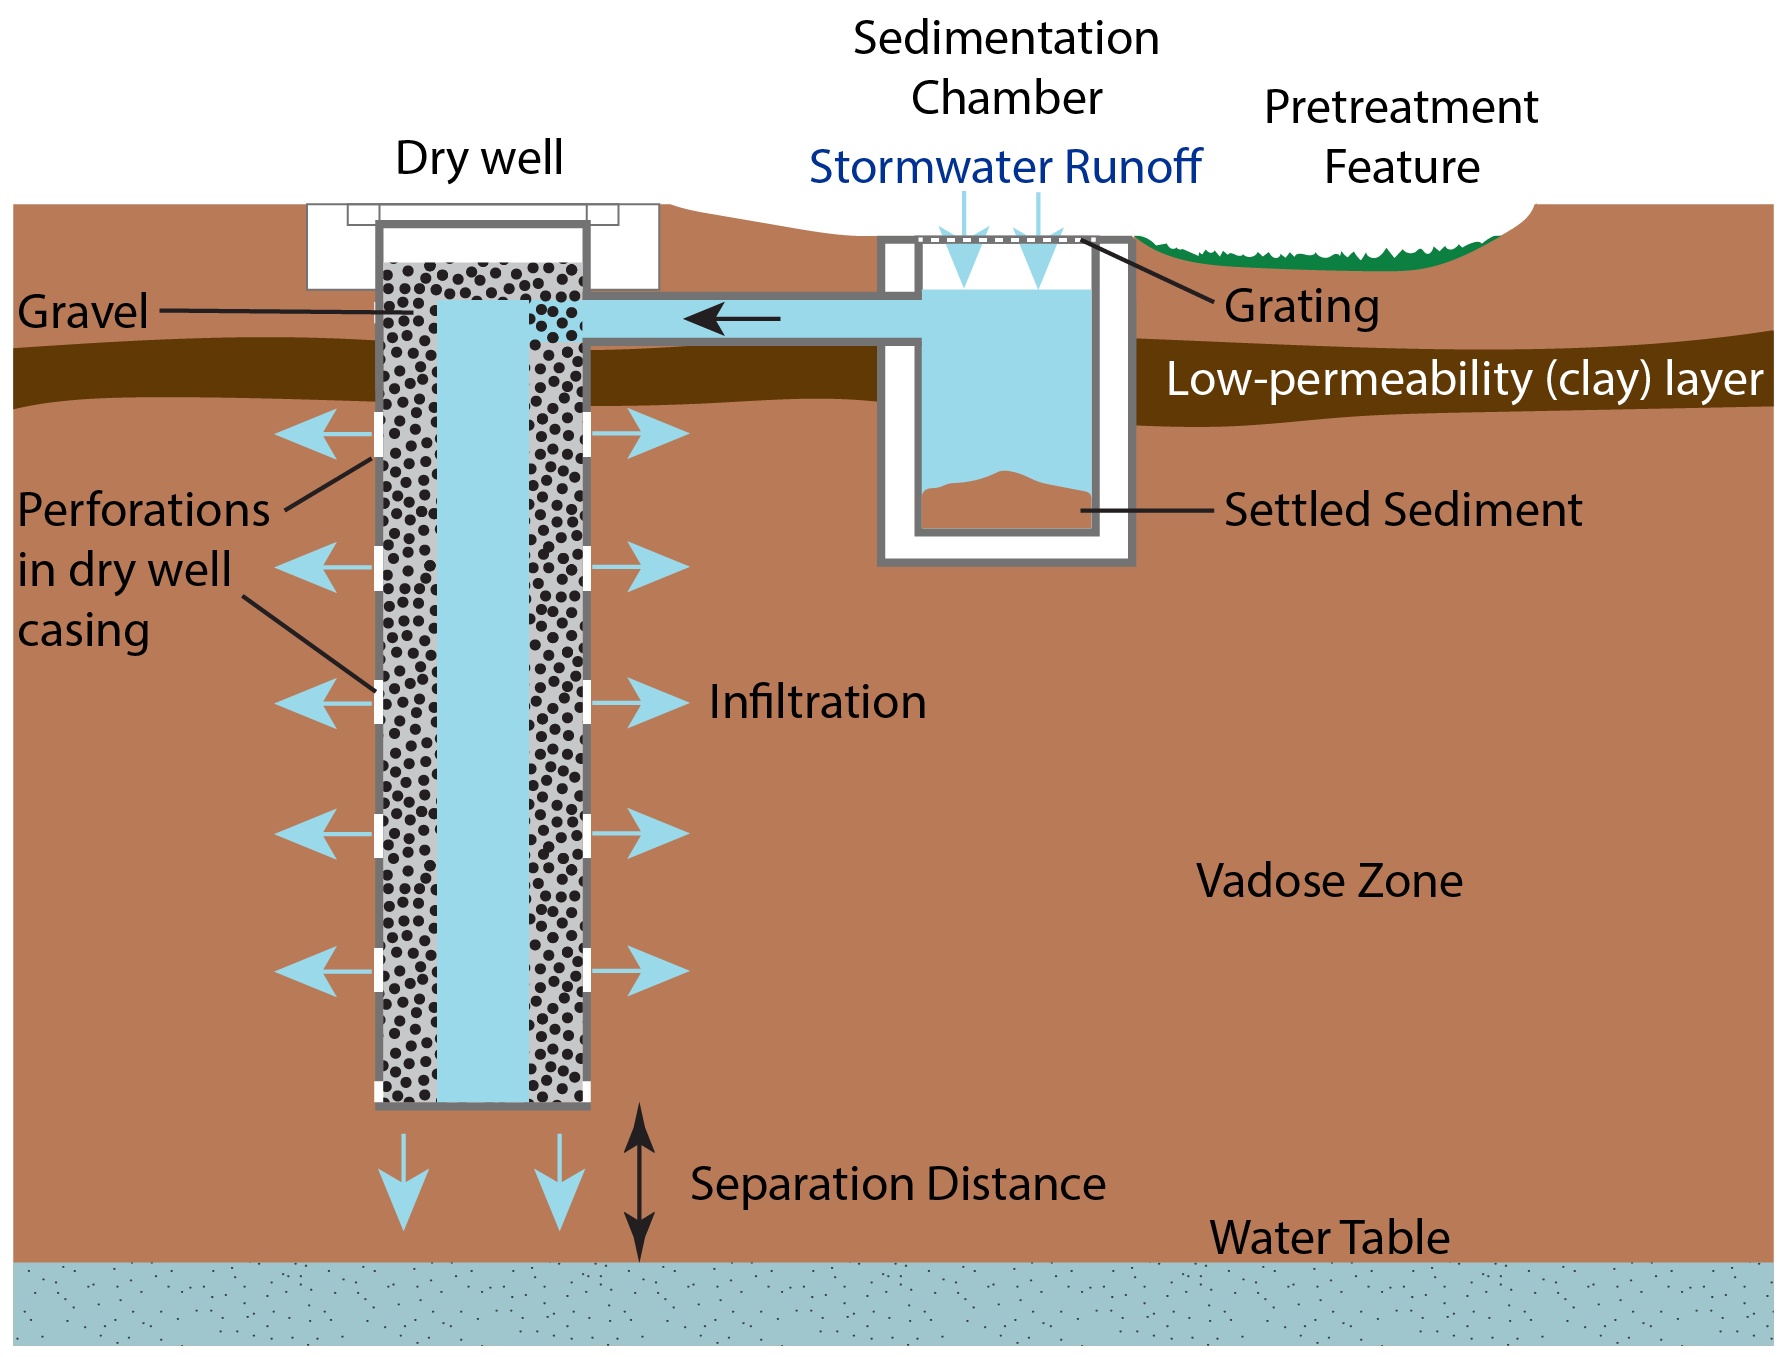 A dry well with two stages of pretreatment: grassy swale and sedimentation well.